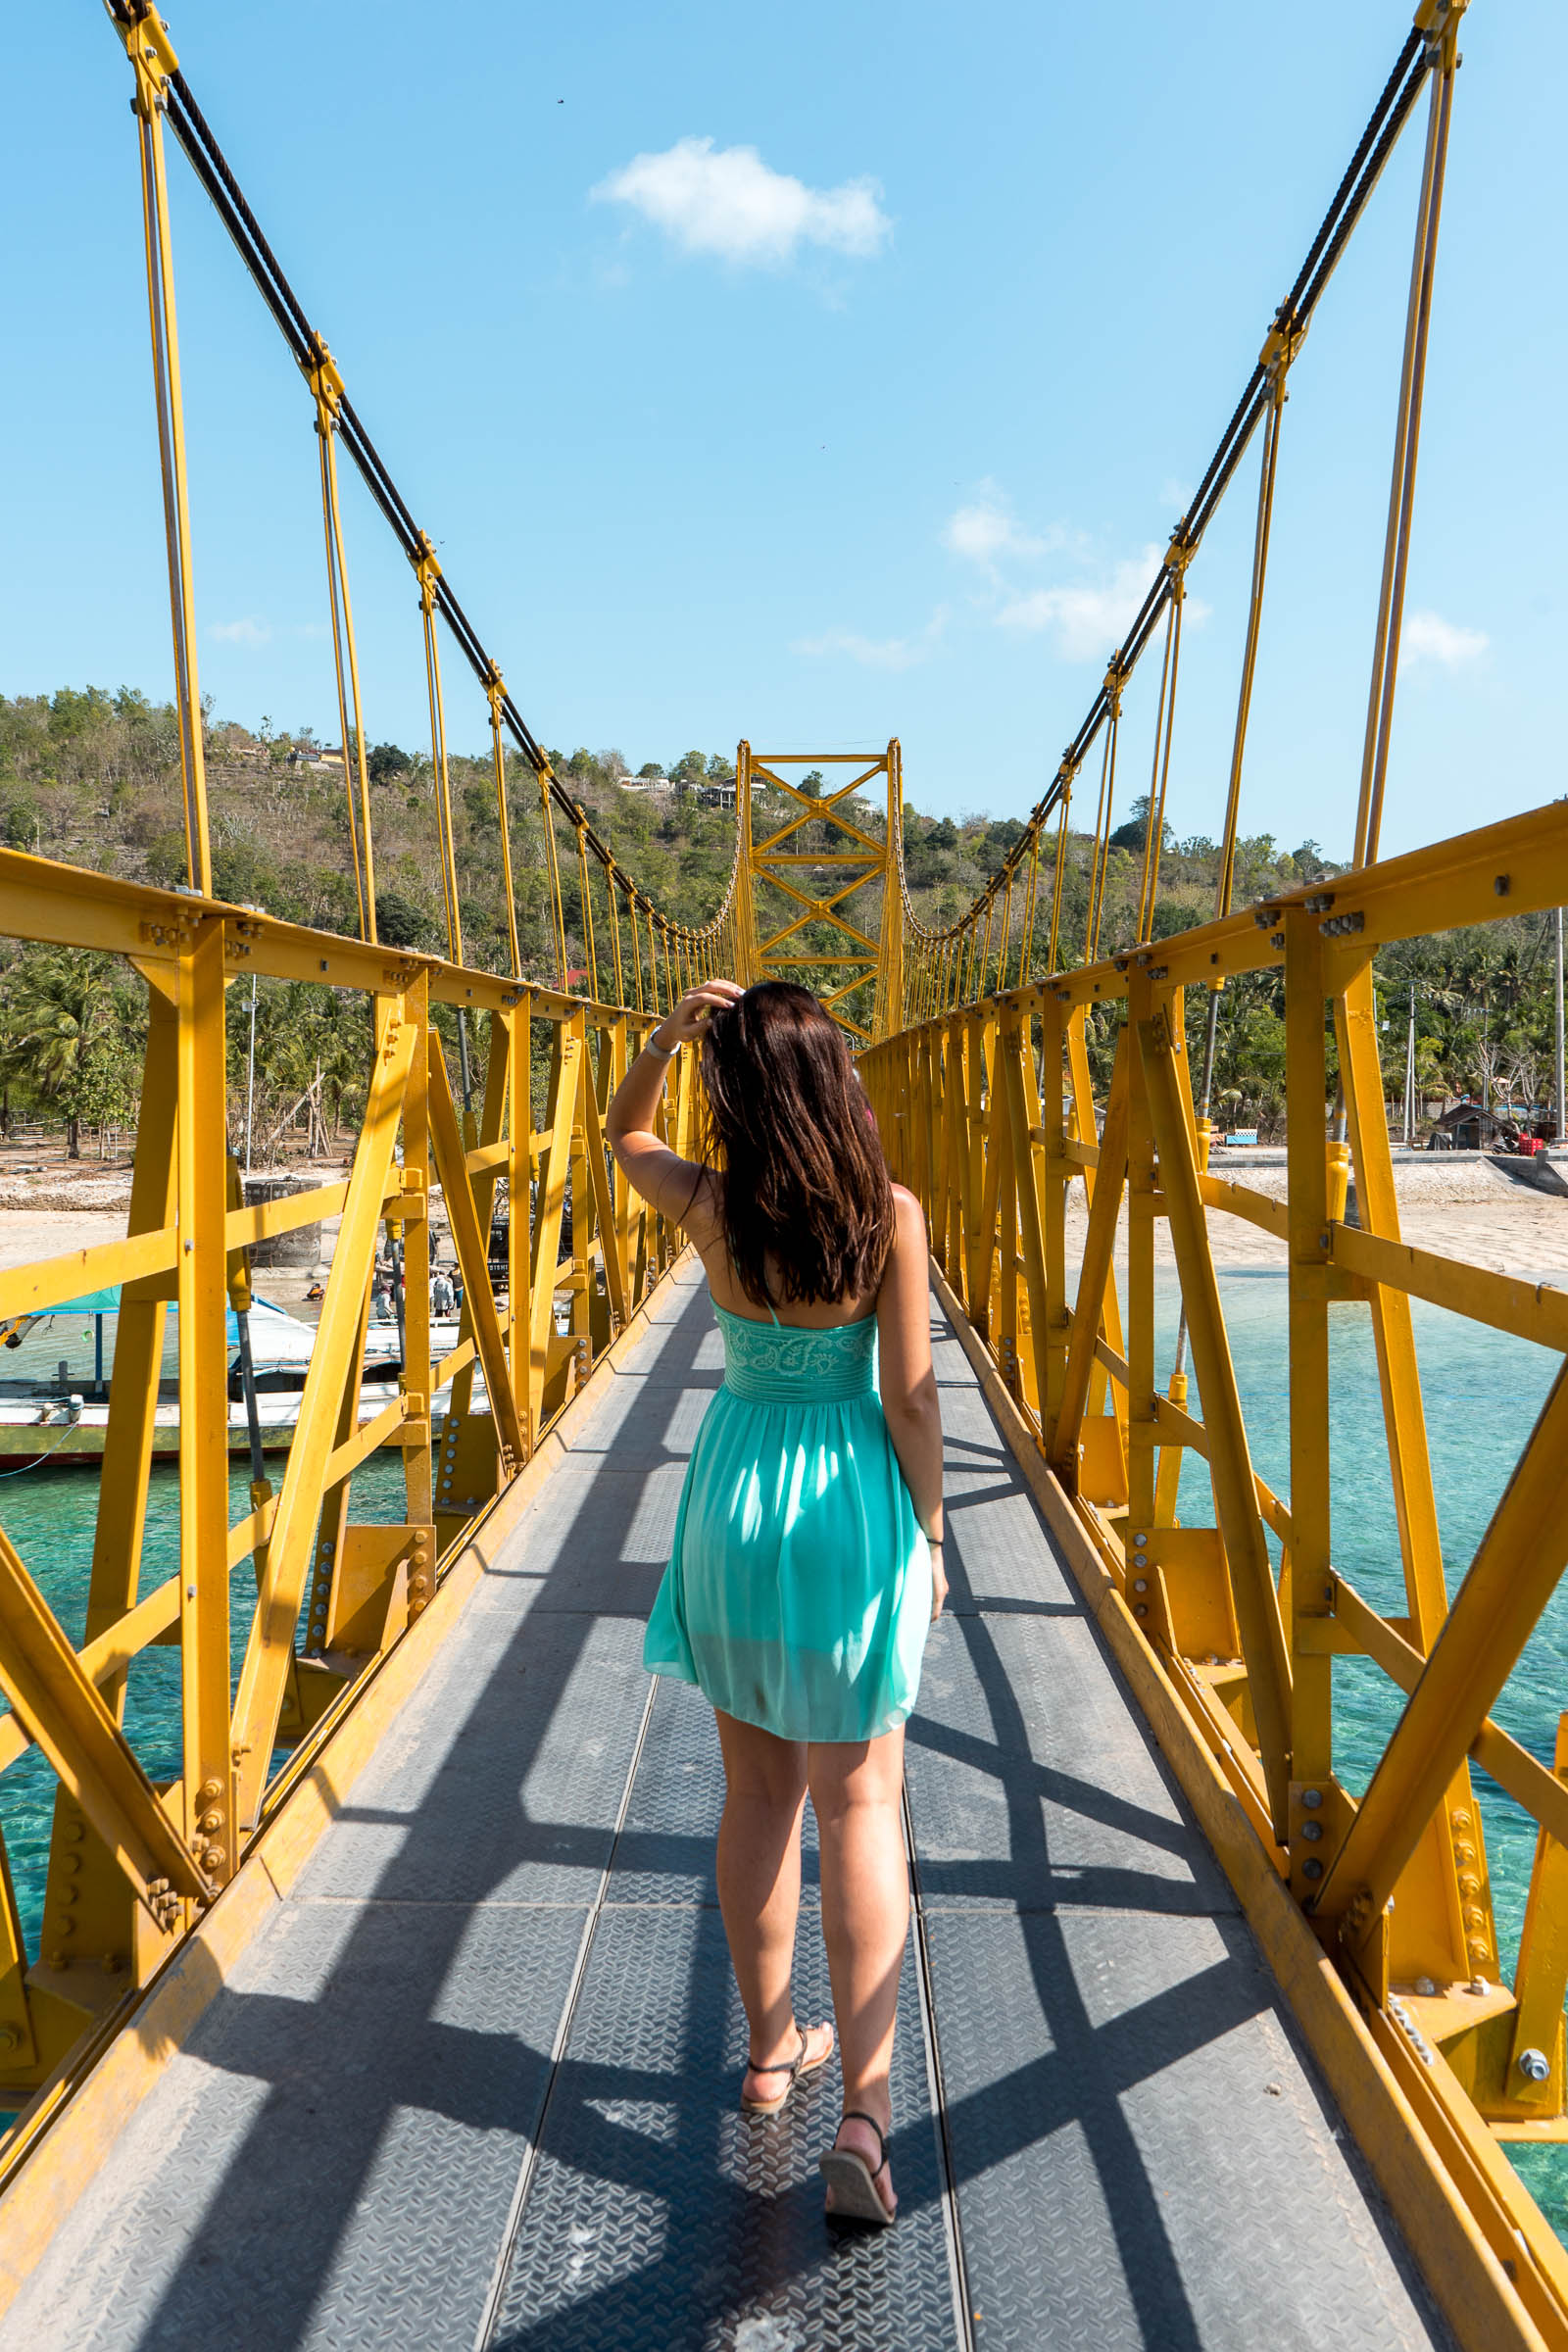 Girl in a blue dress standing on the Yellow bridge between Nusa Lembongan and Nusa Ceningan